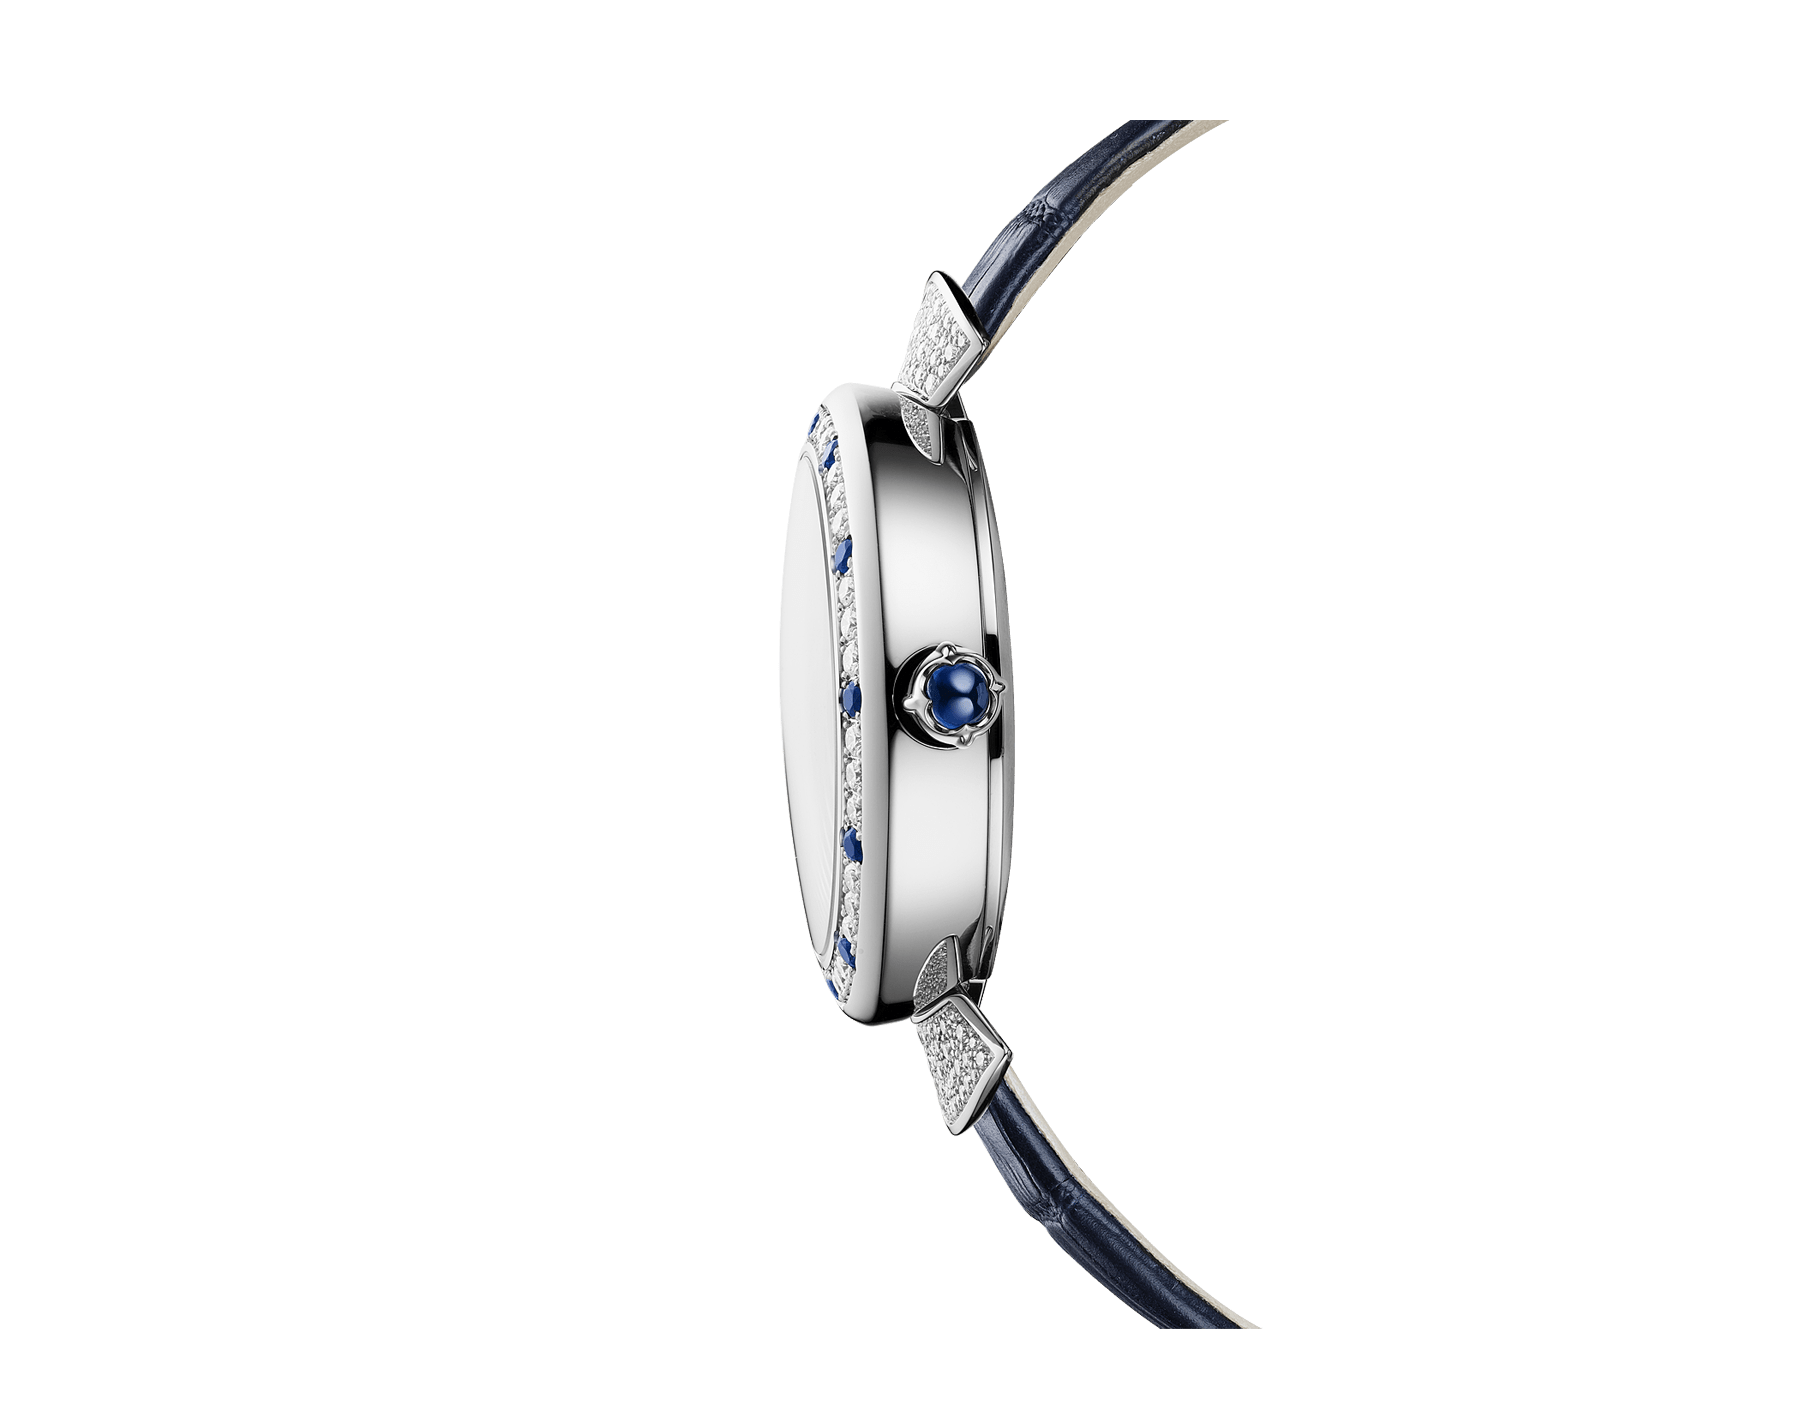 DIVAS' DREAM watch with mechanical manufacture movement, automatic winding, 18 kt white gold case set with round brilliant-cut diamonds and sapphires, aventurine rotating discs with diamonds and printed constellations and dark blue alligator bracelet 102842 image 2